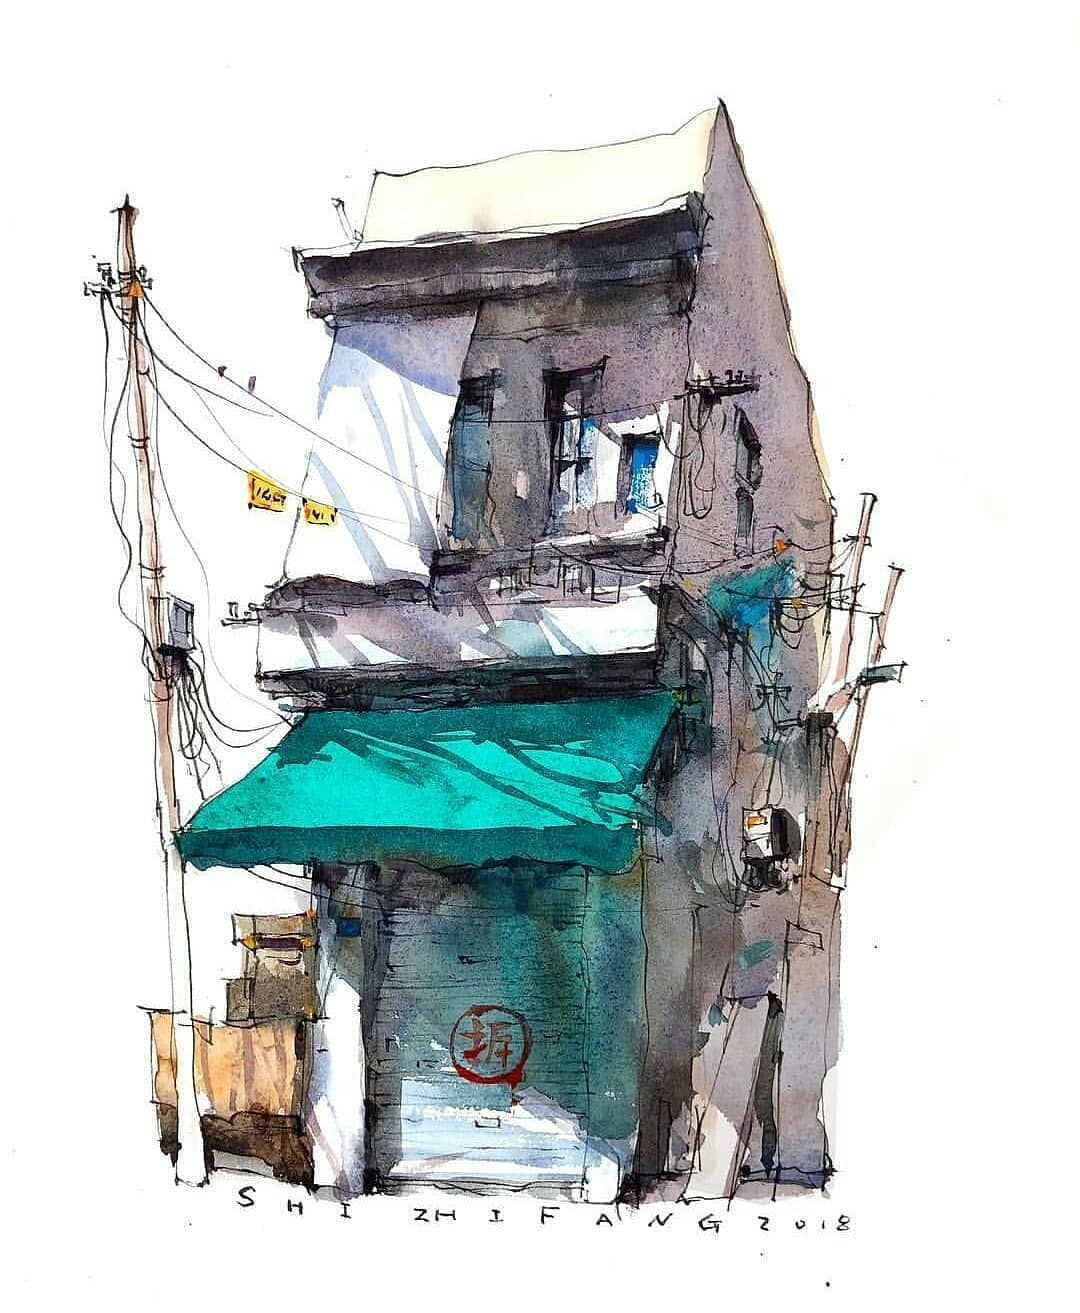 Watercolor Architectural Sketches Follow Sketch Dailydose For